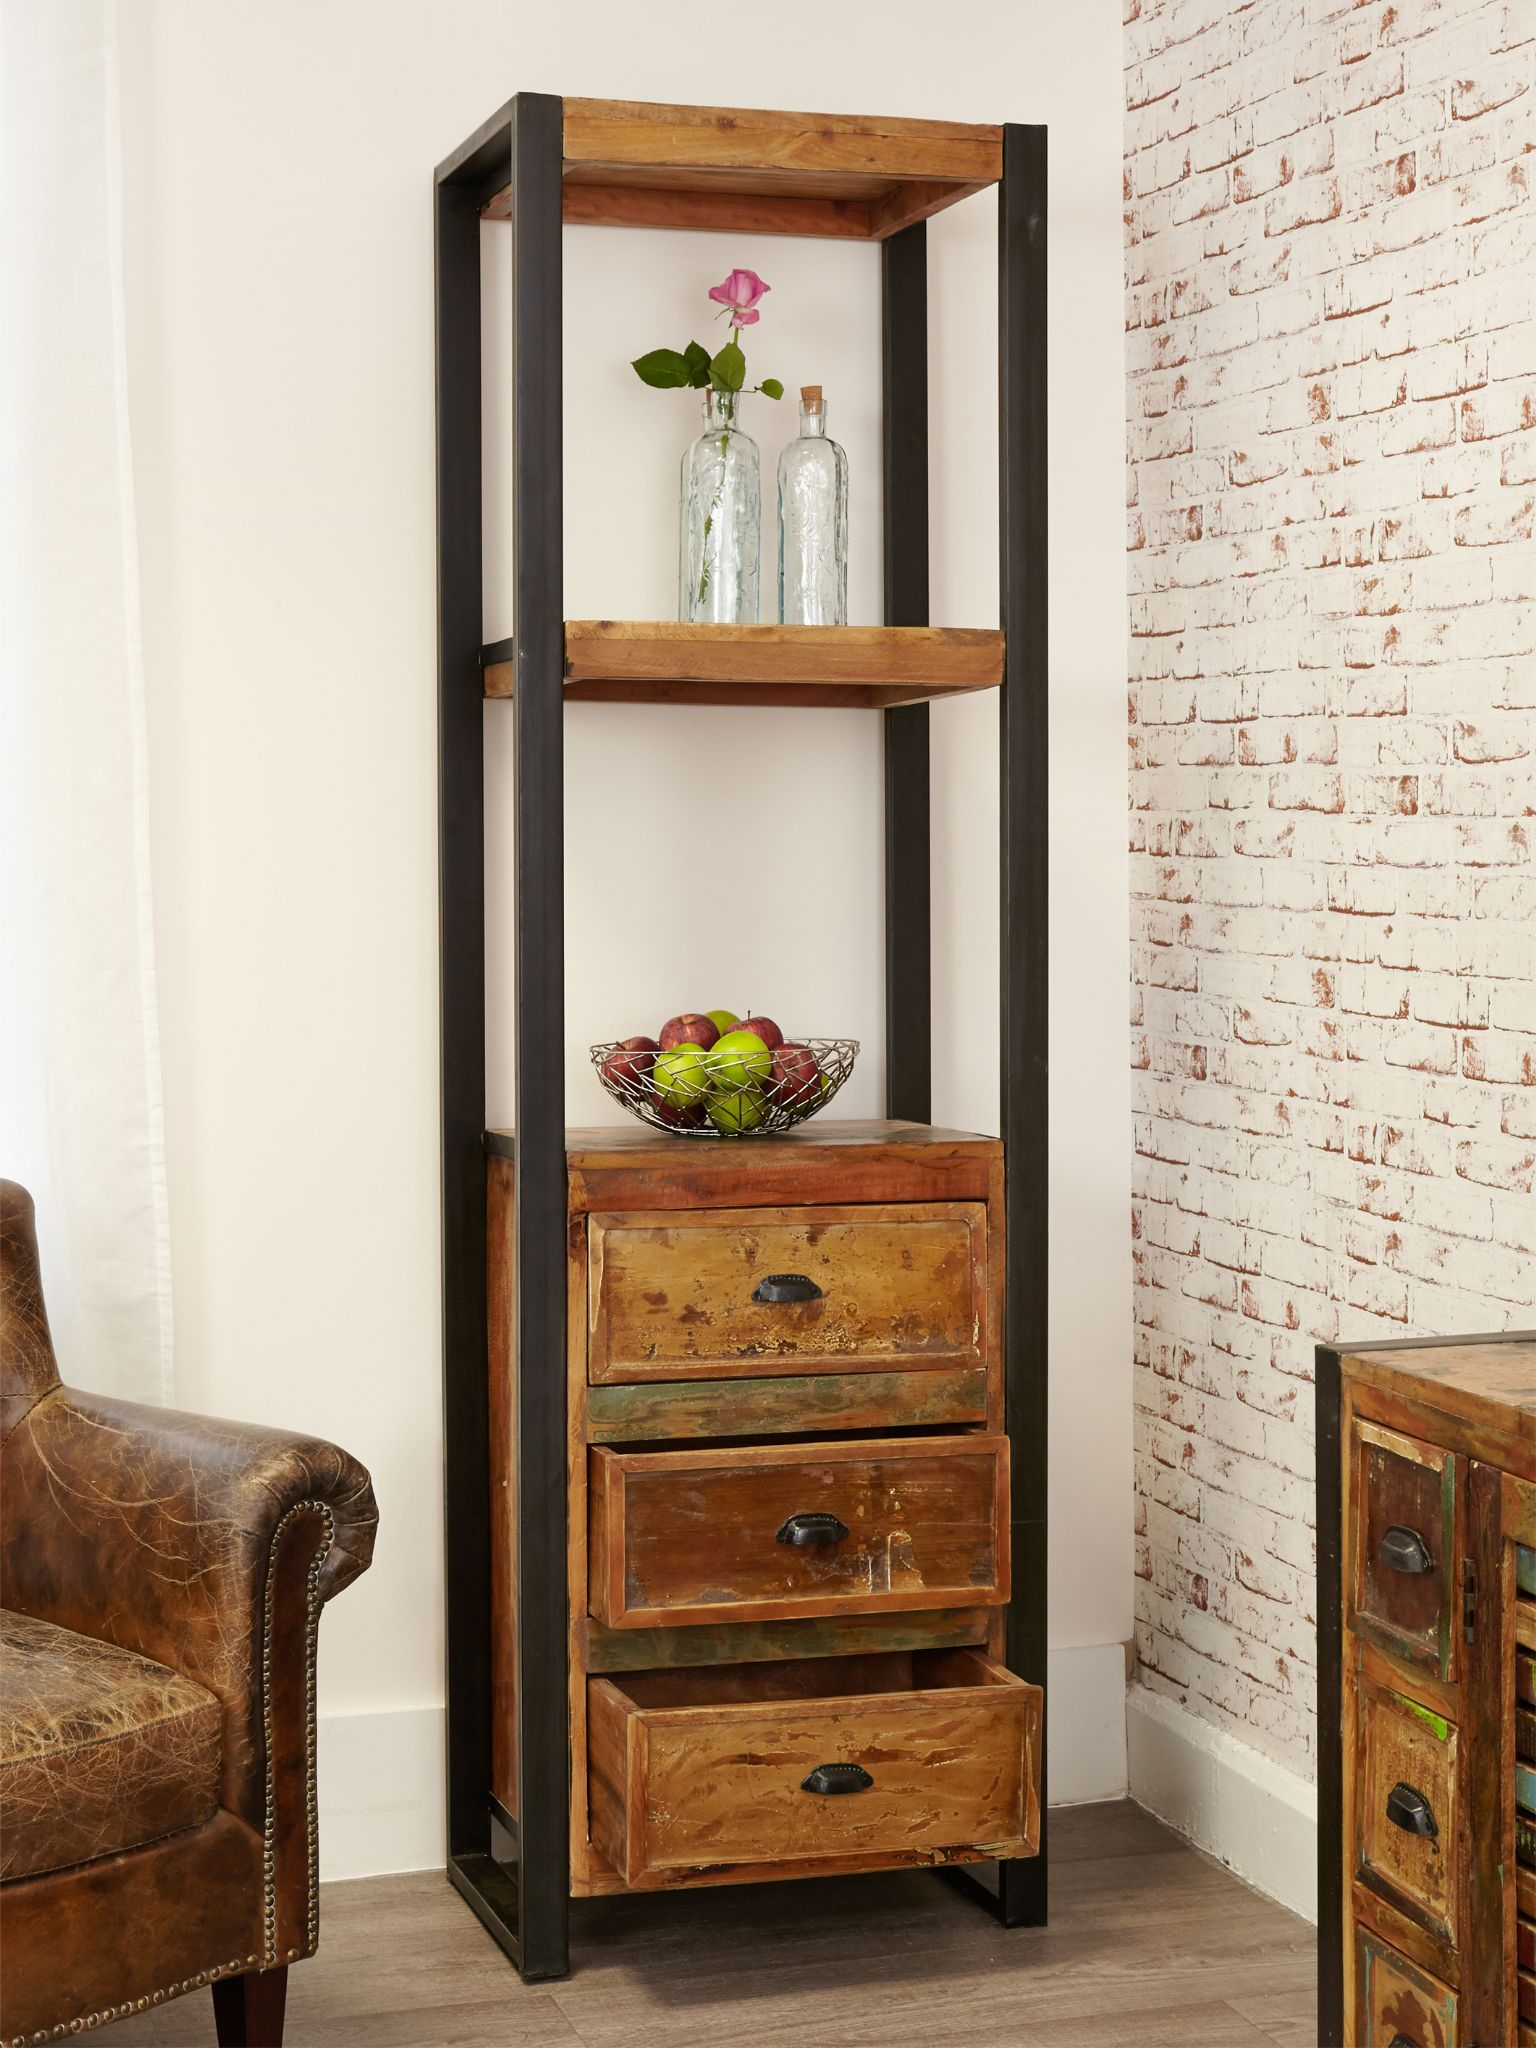 Bathroom Pantry Cabinet Narrow Industrial Bookcase With Drawers Urban Chic Butler Sink